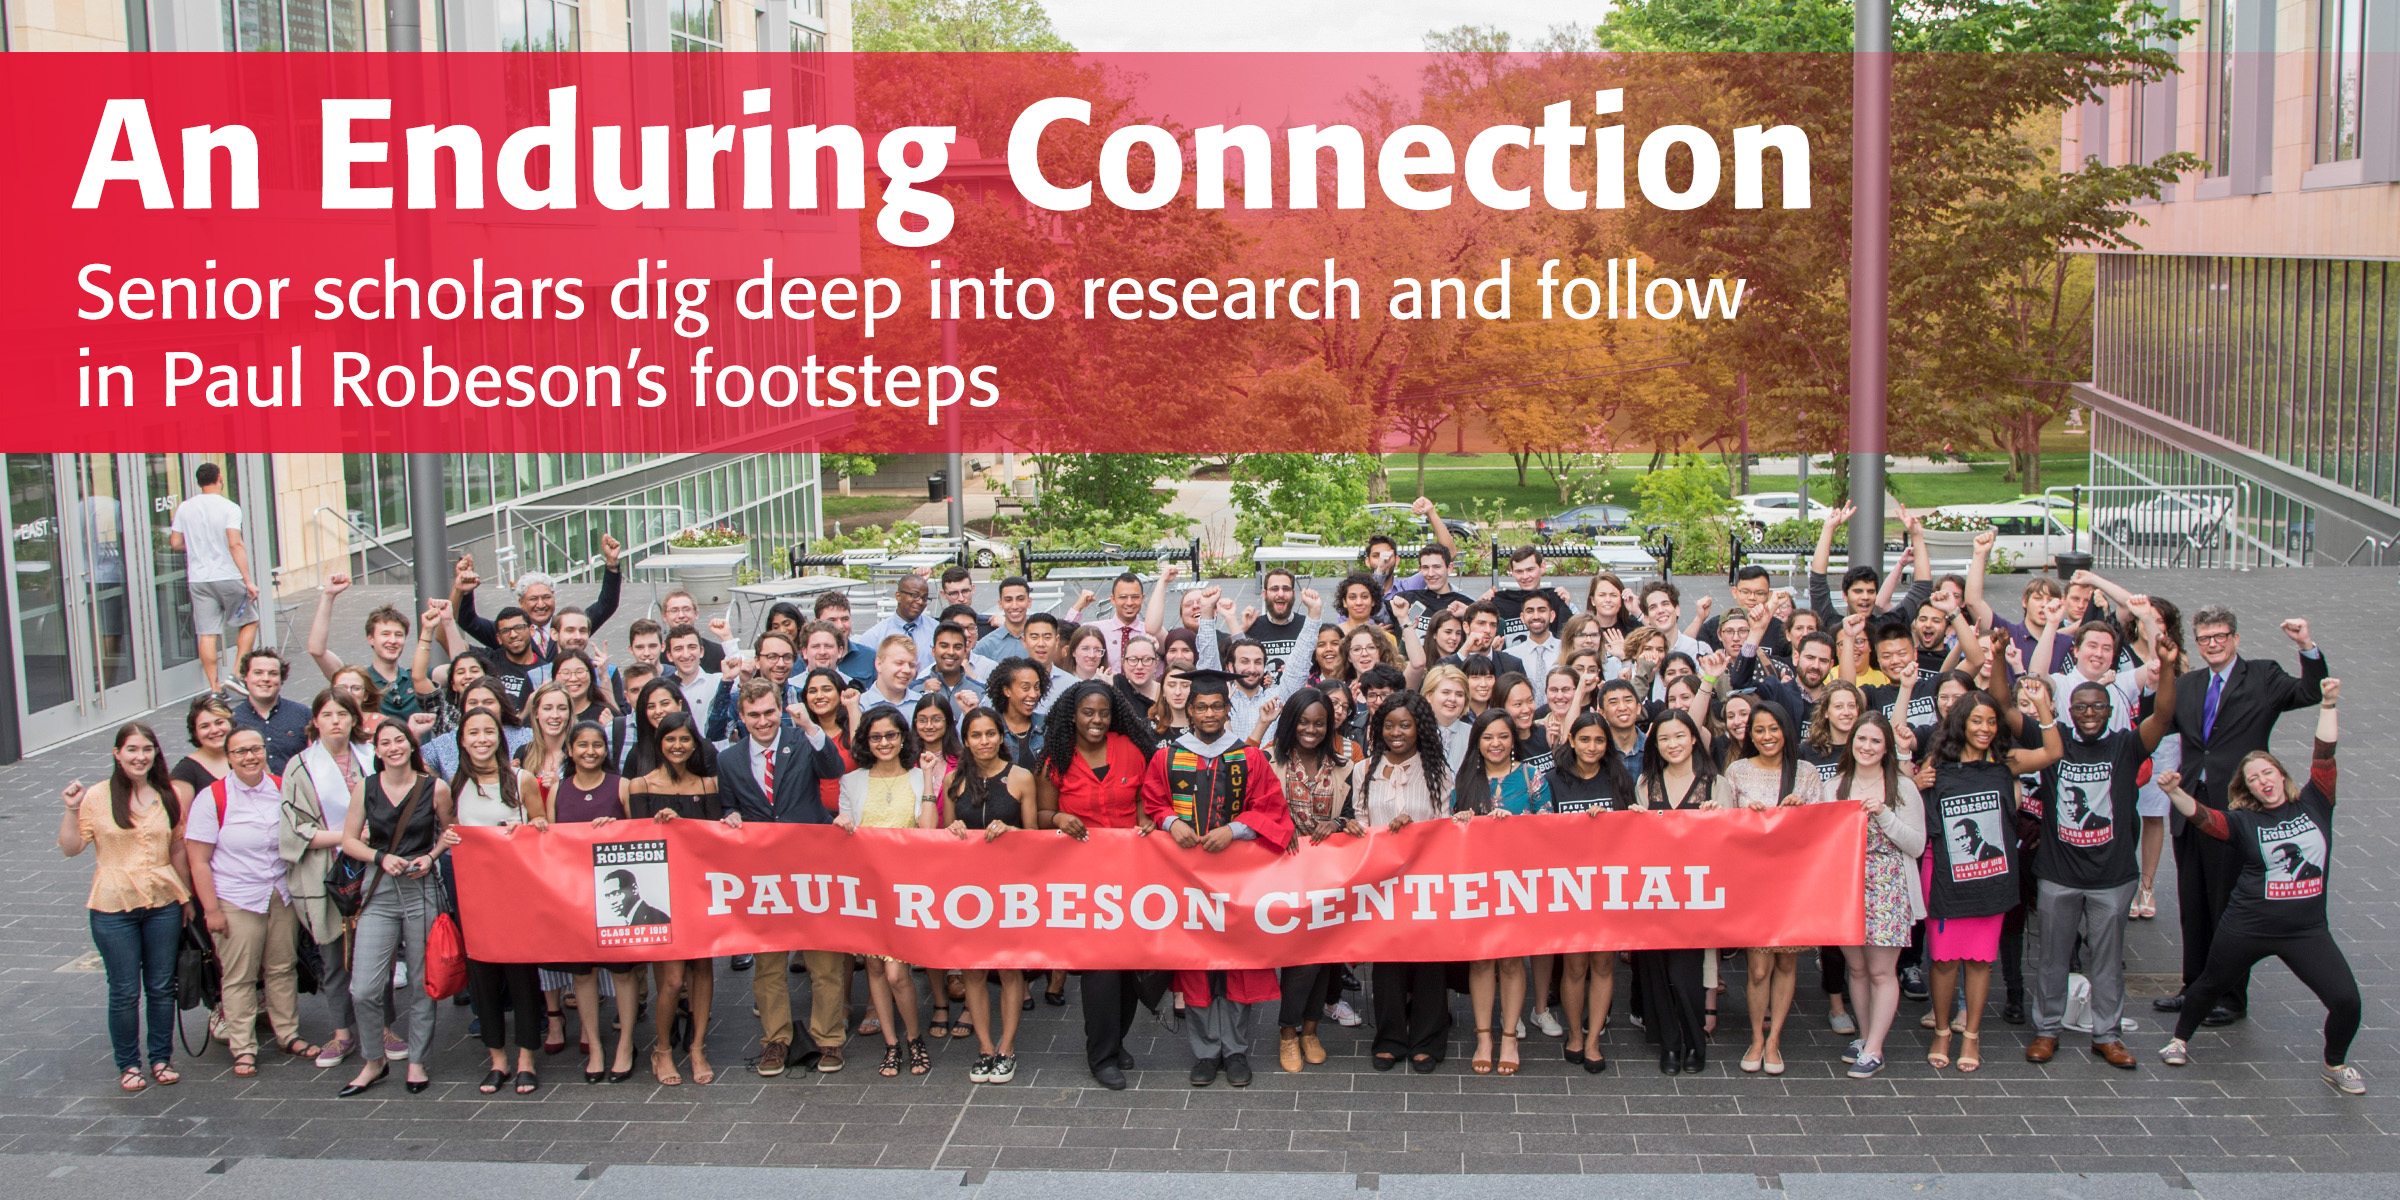 An Enduring Connection: Senior scholars dig deep into research and follow in Paul Robeson's footsteps